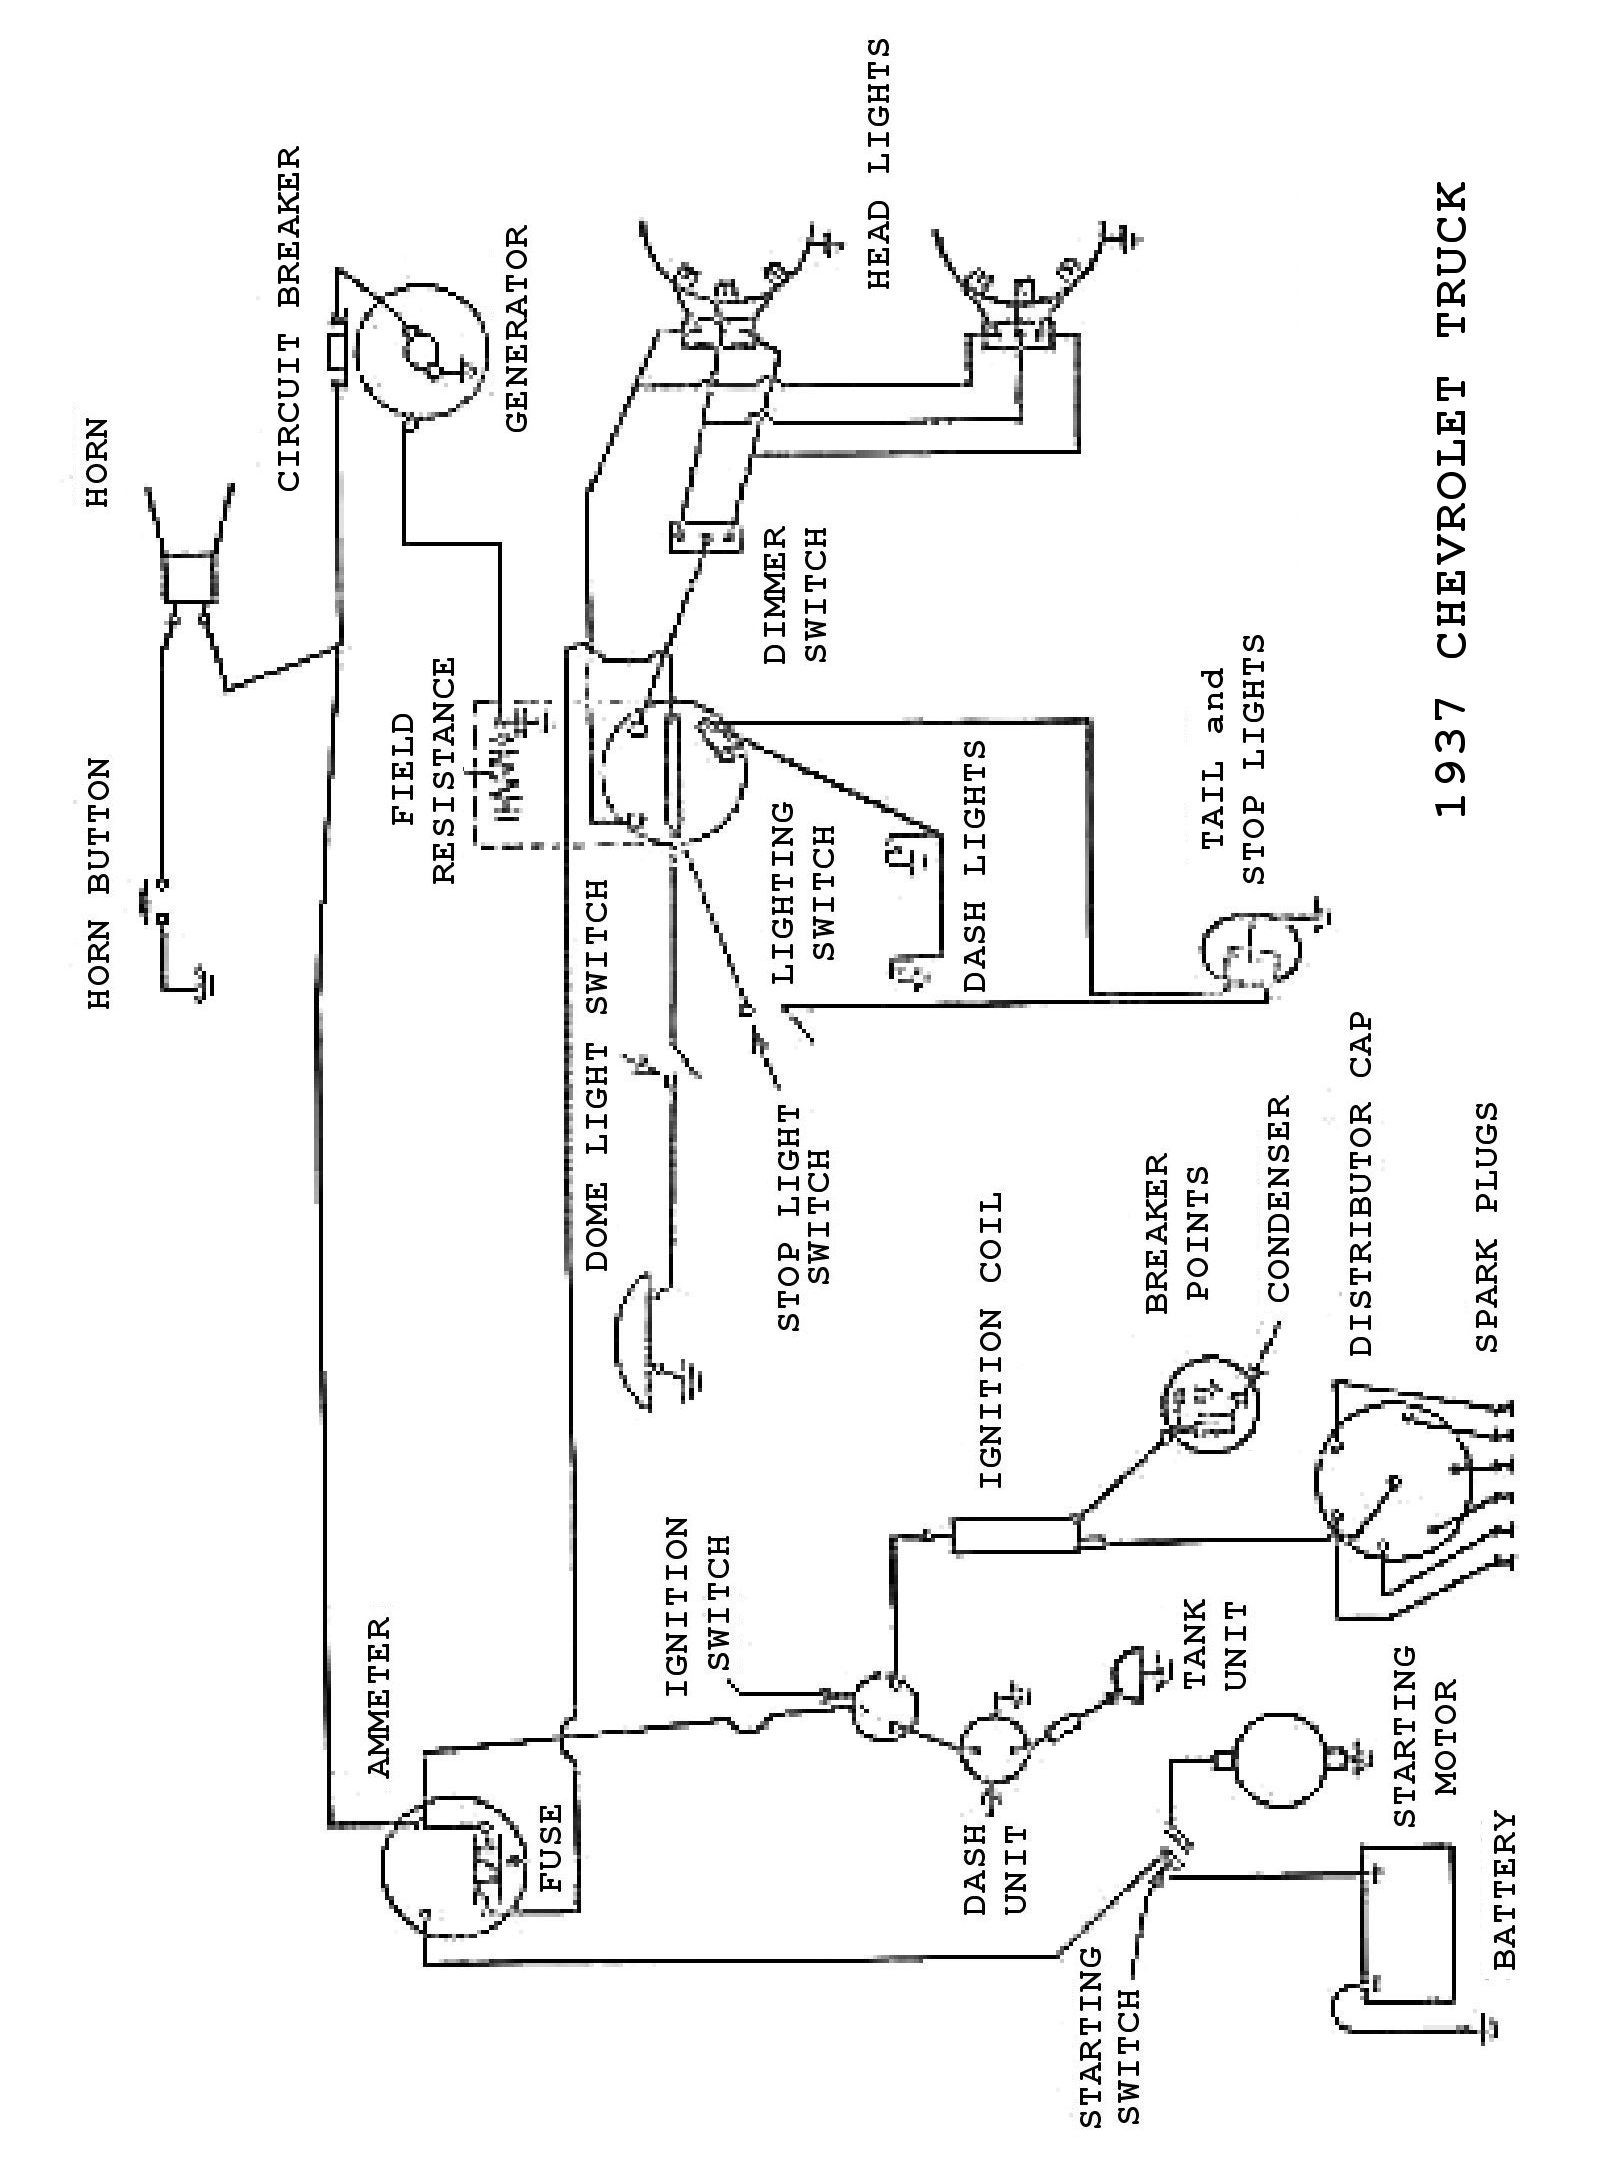 216 chevy engine diagram wiring diagrams